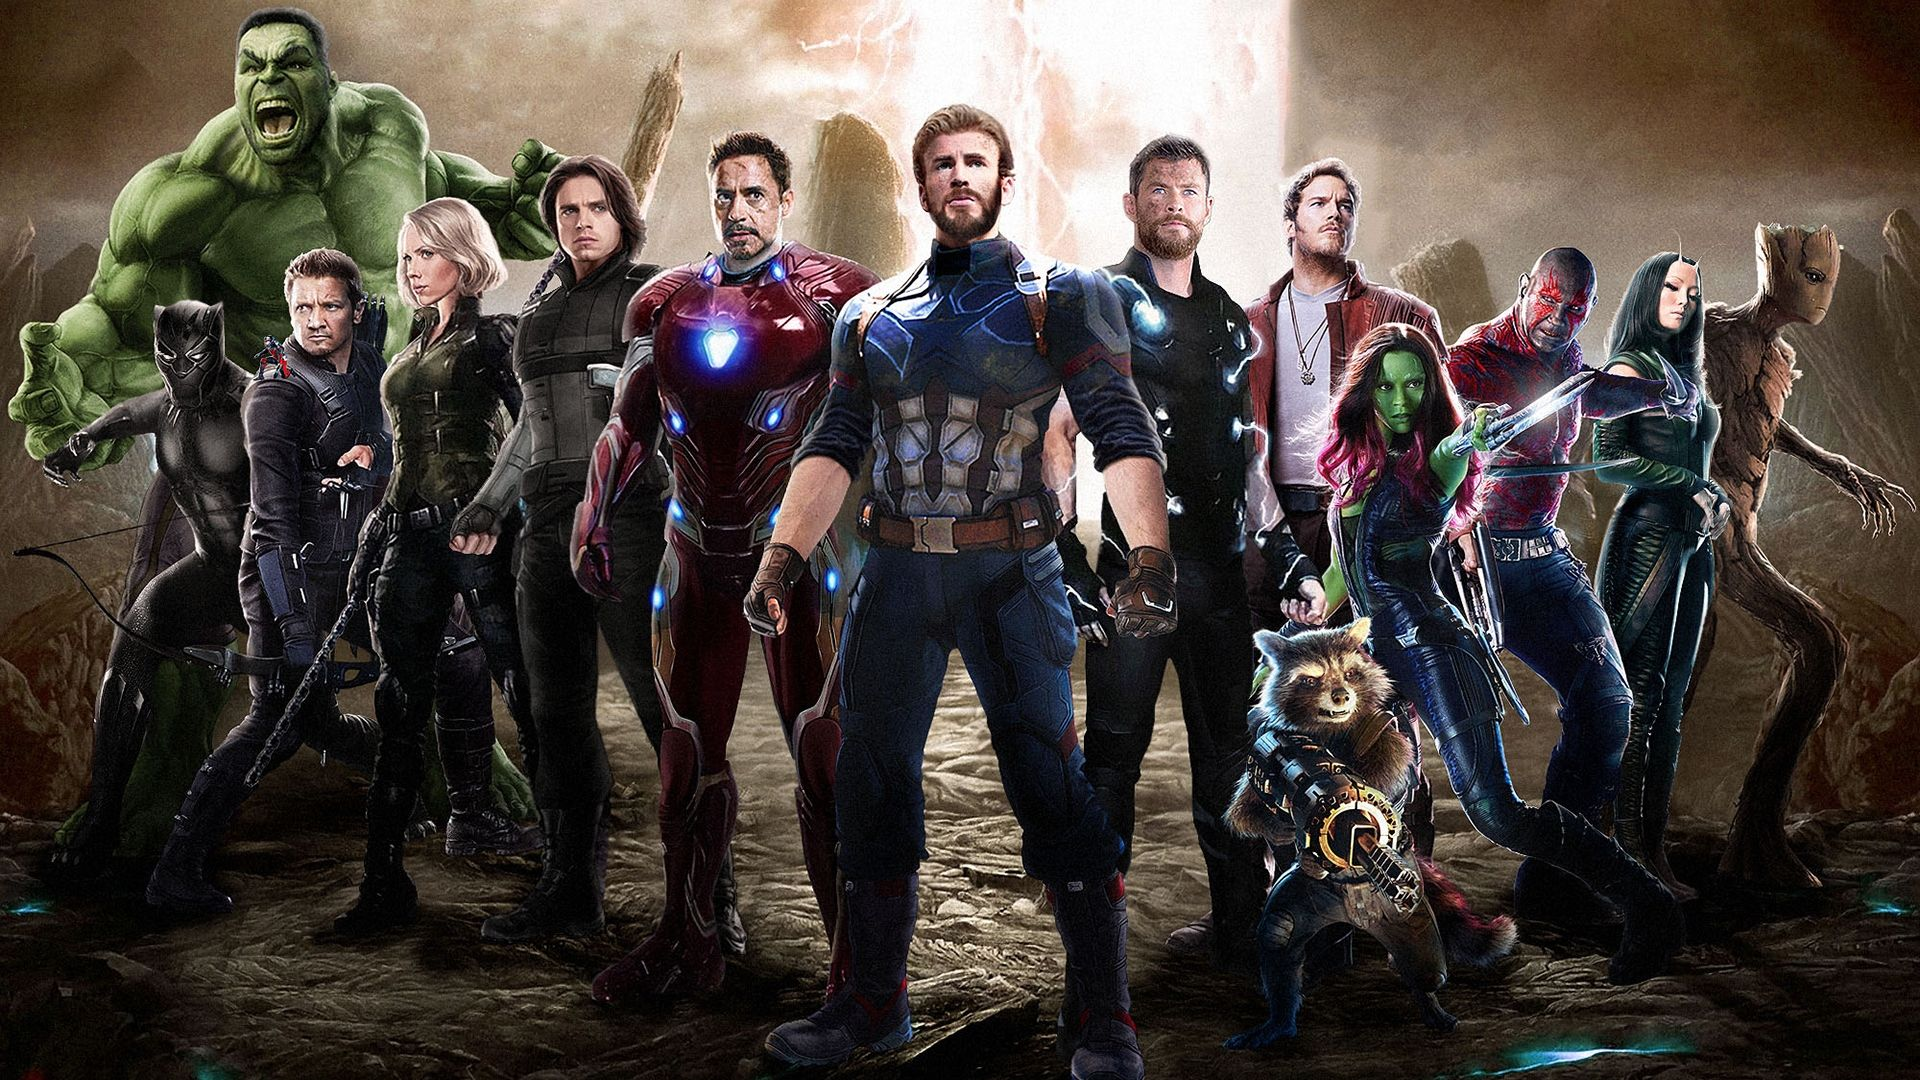 avengers: infinity war movie cast captain america, iron man, thor